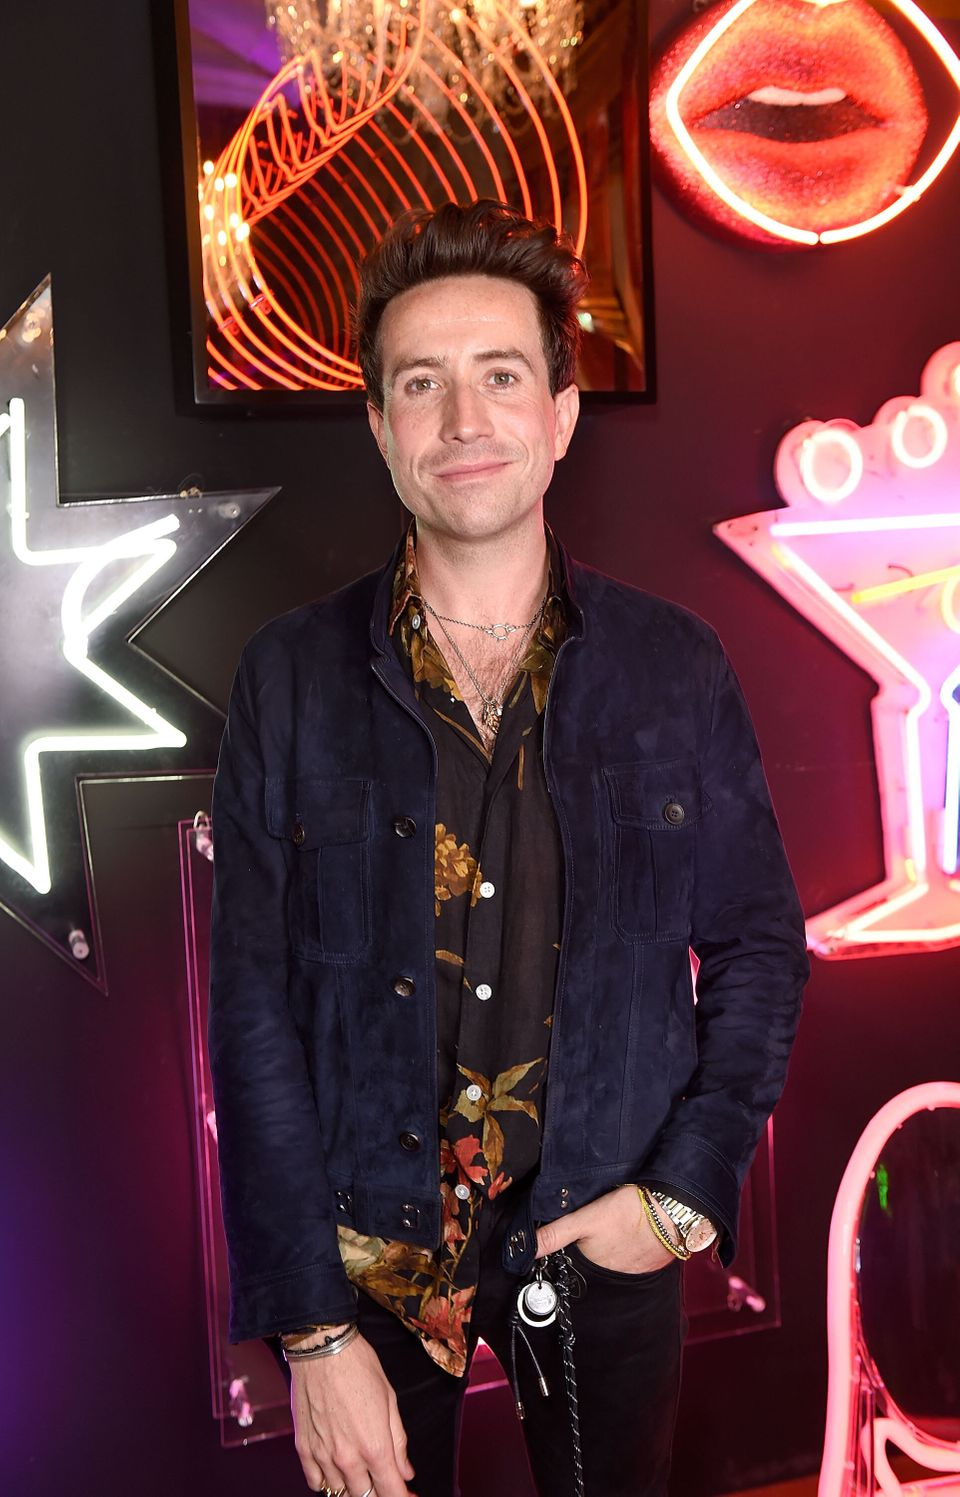 Nick Grimshaw at a Pride event in